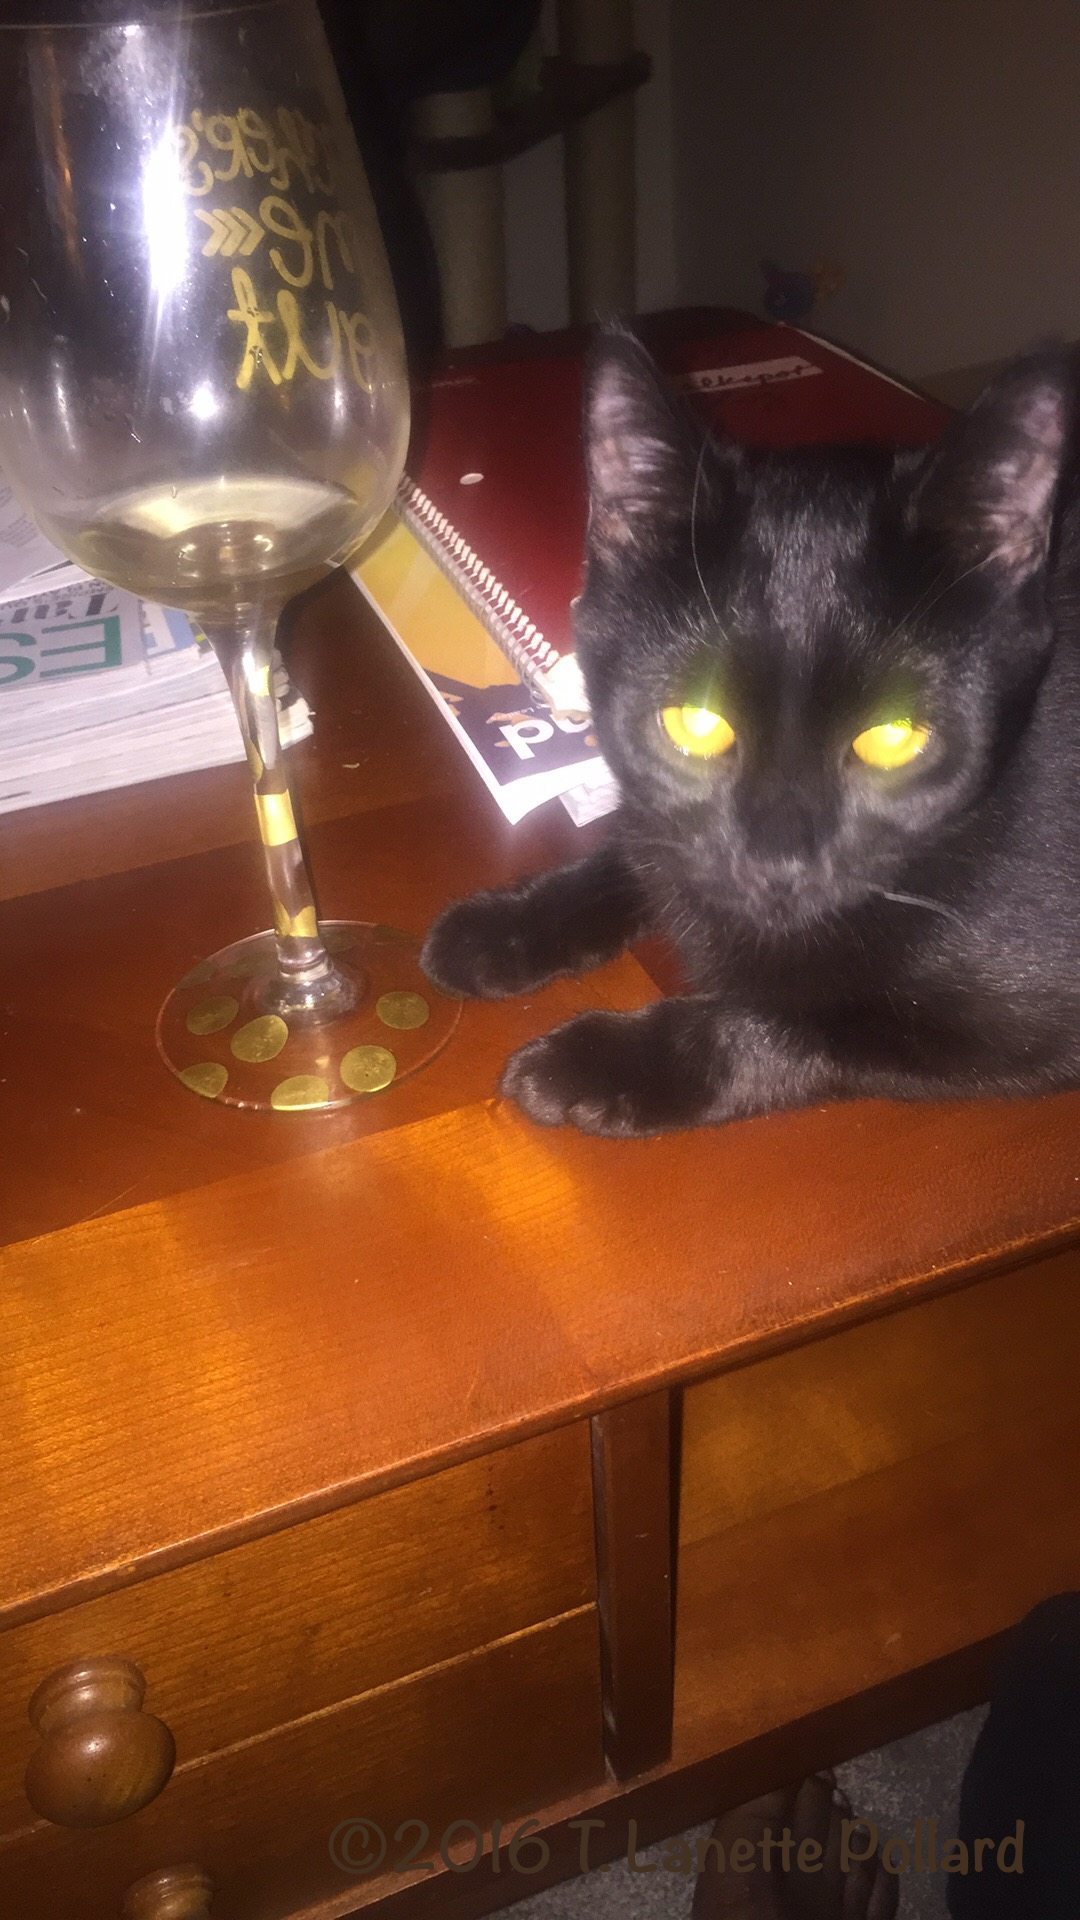 Black Cat: Missing is the Yarn